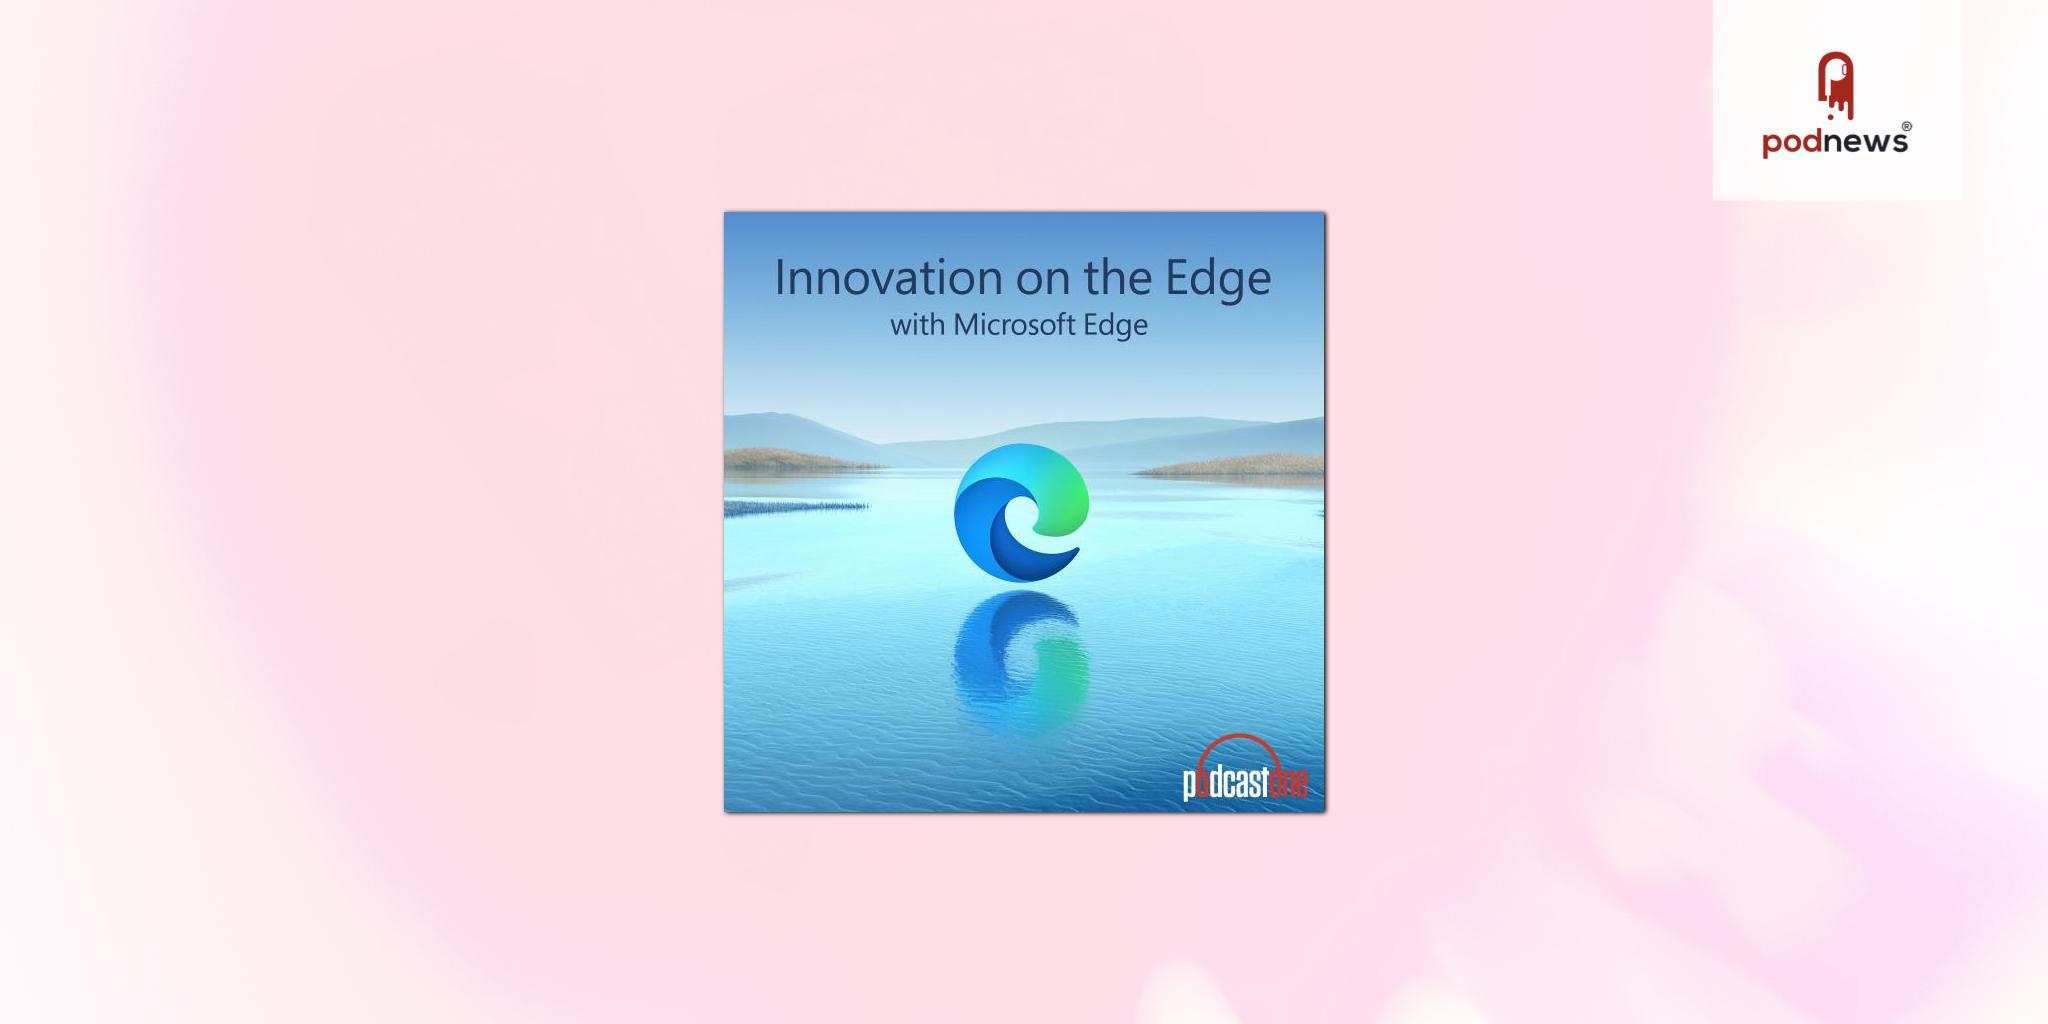 LiveXLive's PodcastOne teams with Microsoft Edge for Innovation on the Edge Podcast